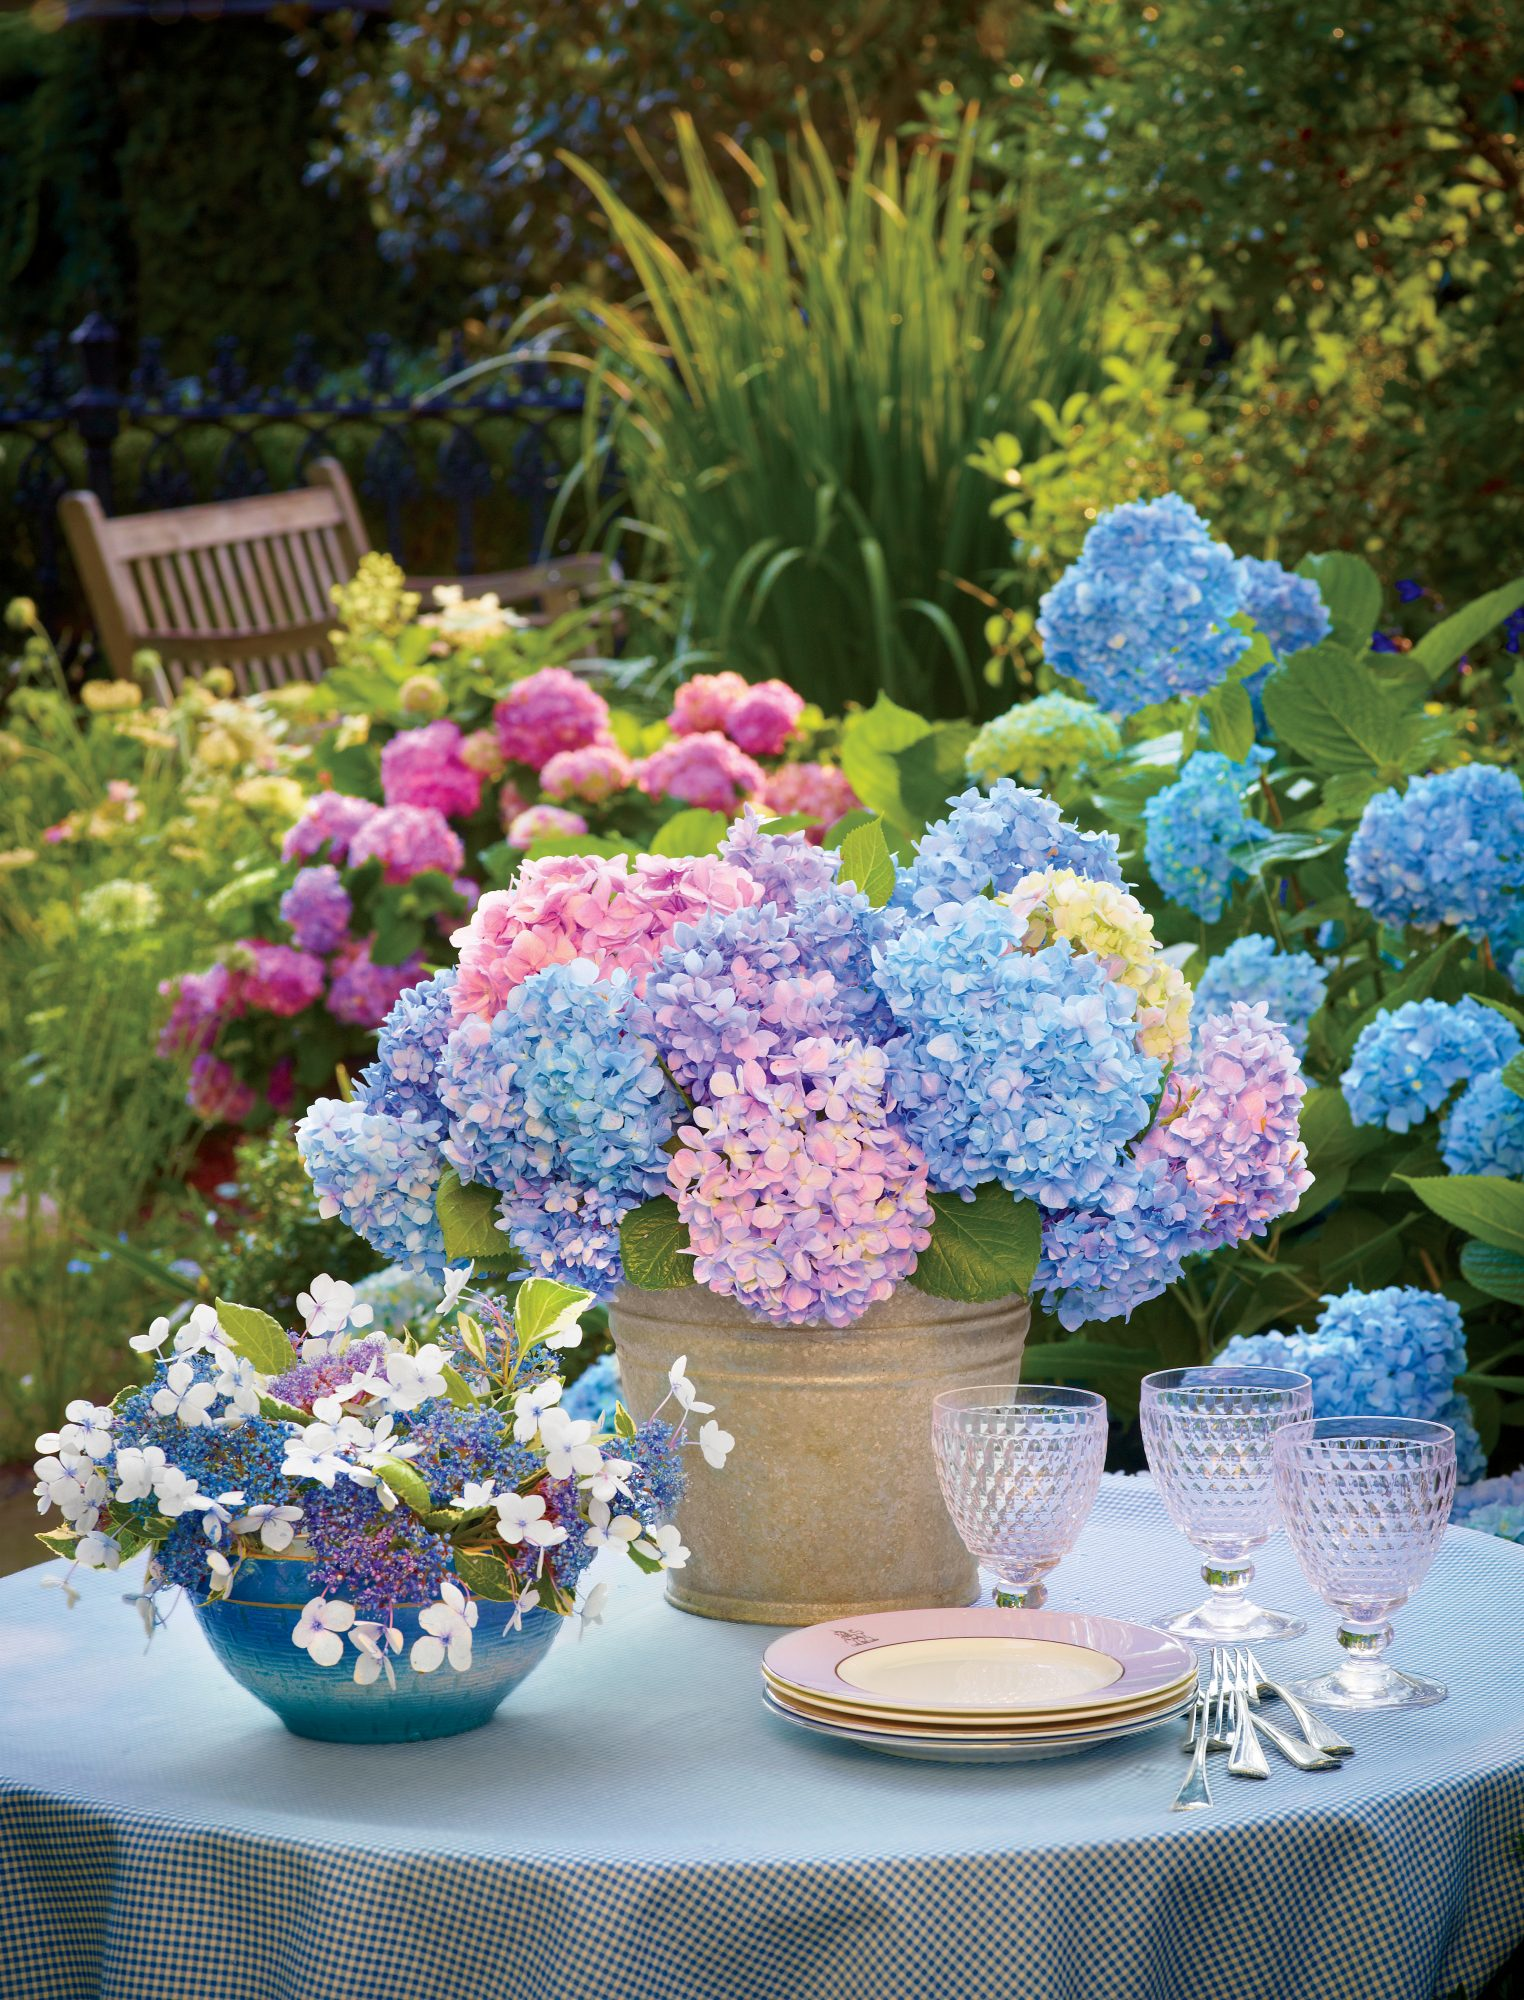 How To Keep Cut Hydrangeas From Wilting